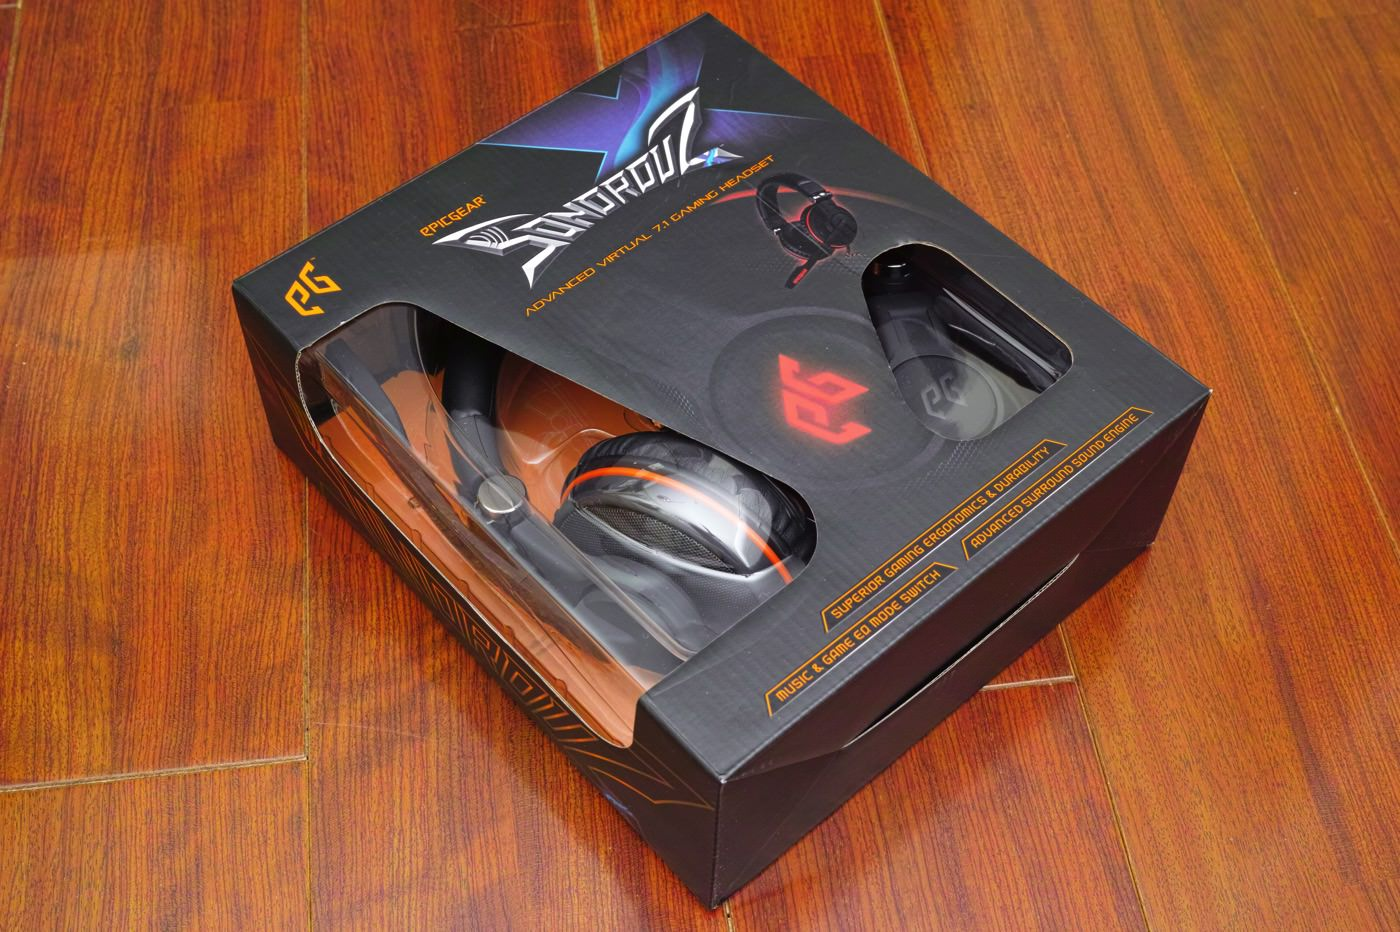 Epicgear sonorouz x gaming headset review 00001